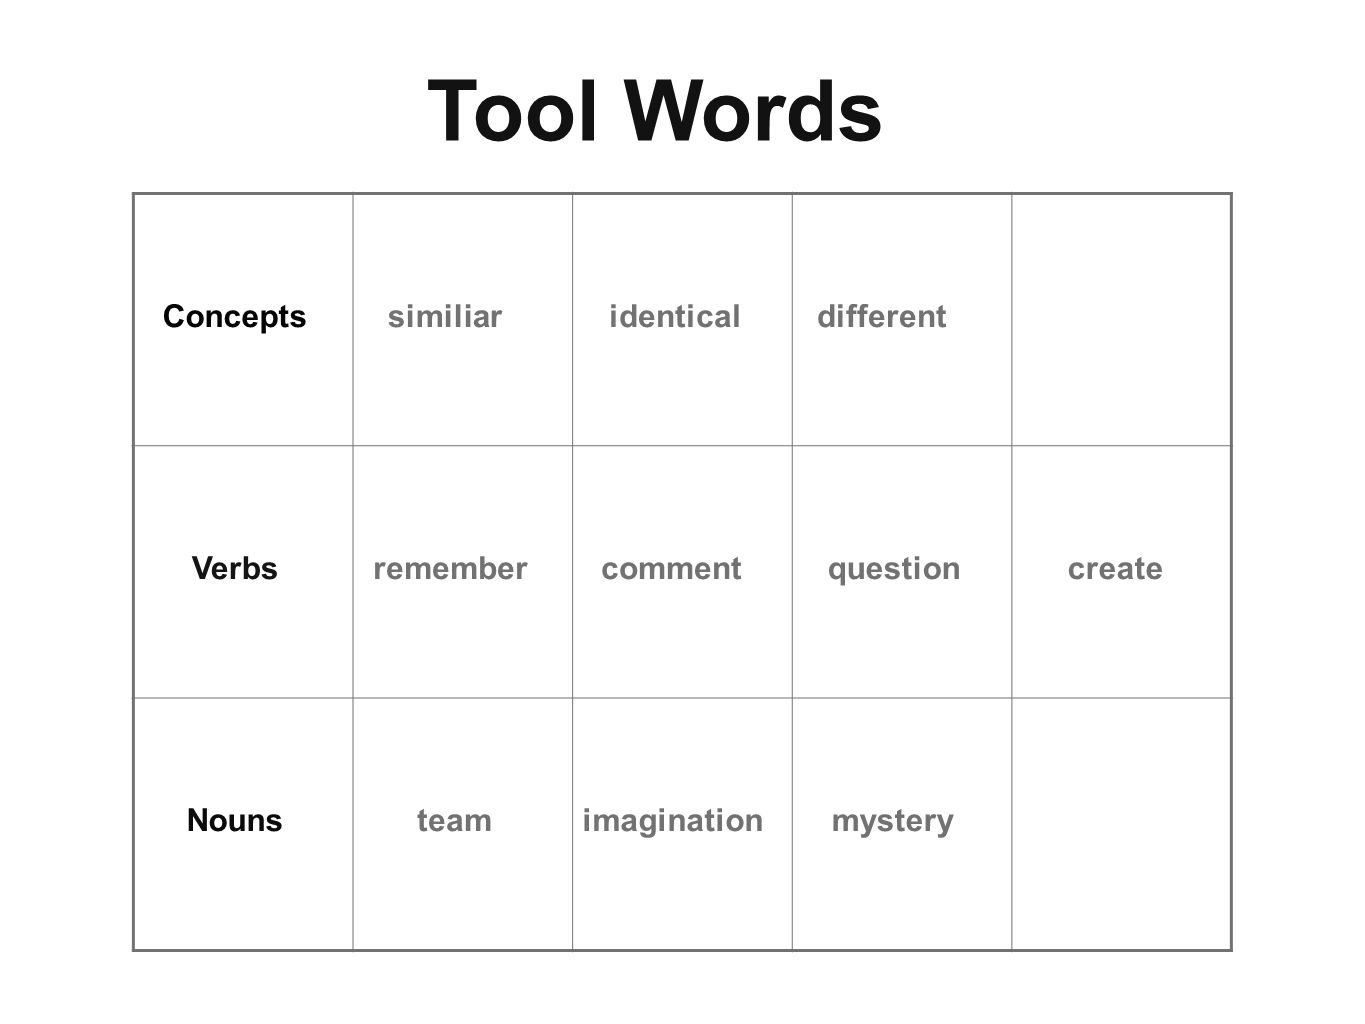 Concepts Verbs Nouns similiaridenticaldifferent remembercommentquestion teamimaginationmystery create Tool Words